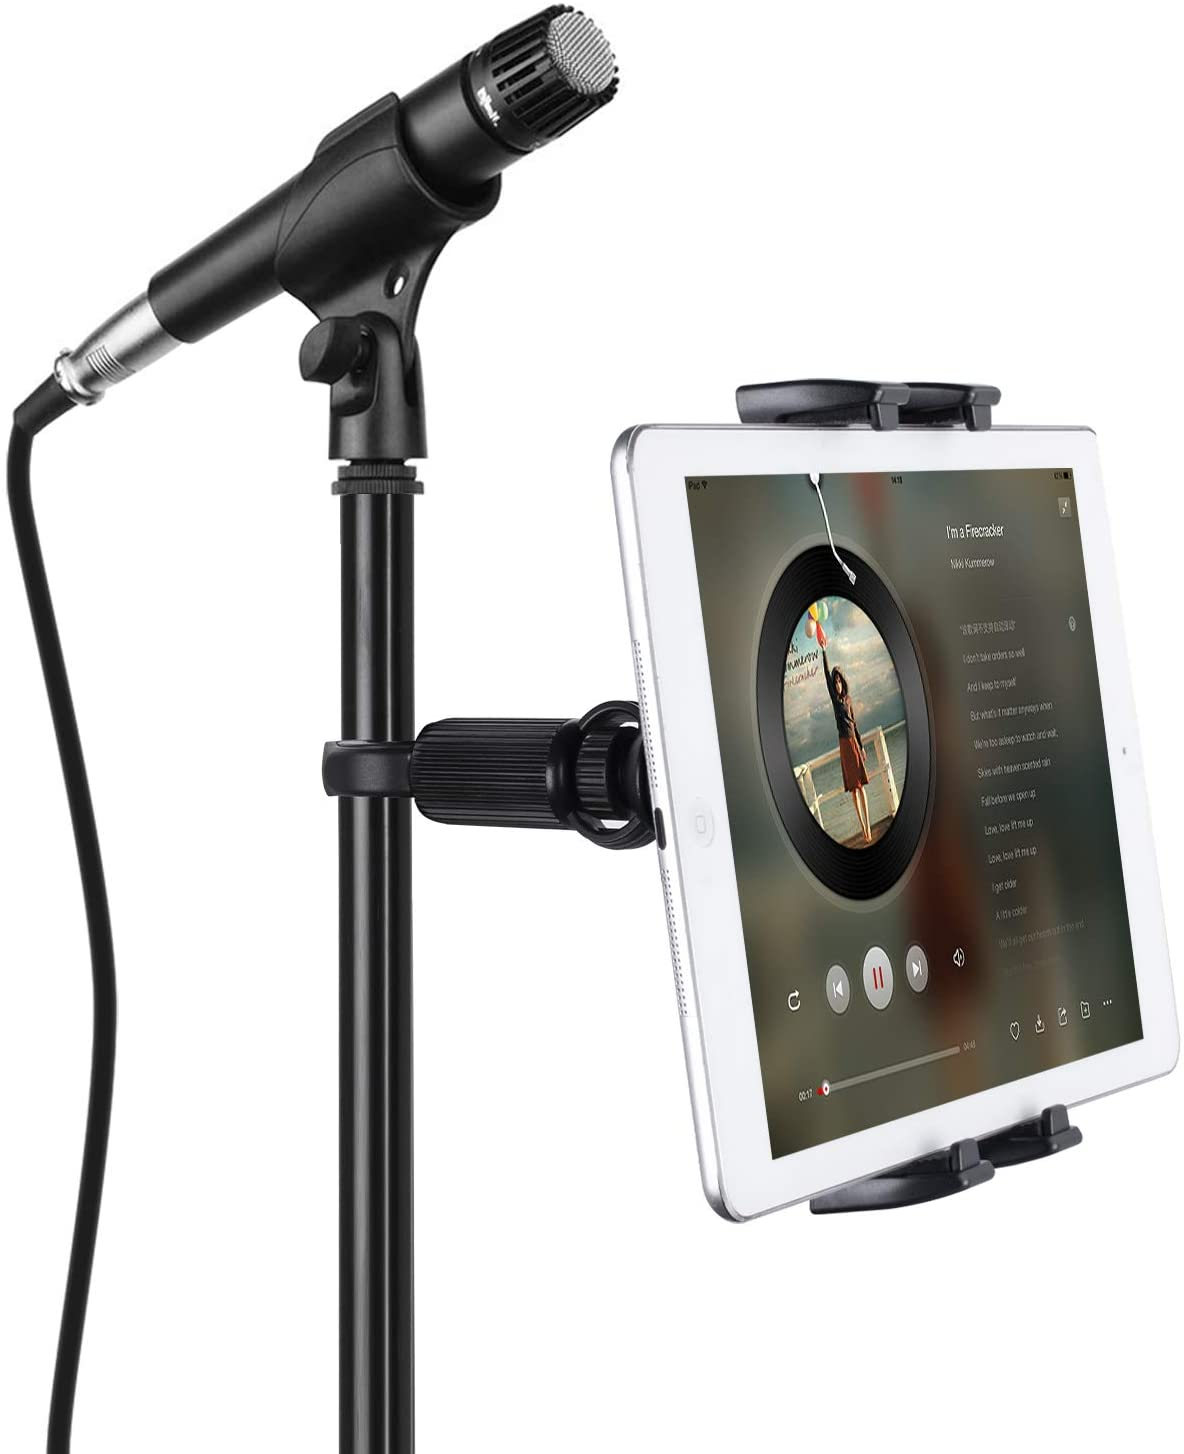 Tablet Mounts for Microphone Stands, JUBOR Microphone Tablet Holder, Mic Music Stand for iPad, iPad Pro, iPad Air, iPad Mini, 2, 3, iPhone, Smartphone 4.7-12.9